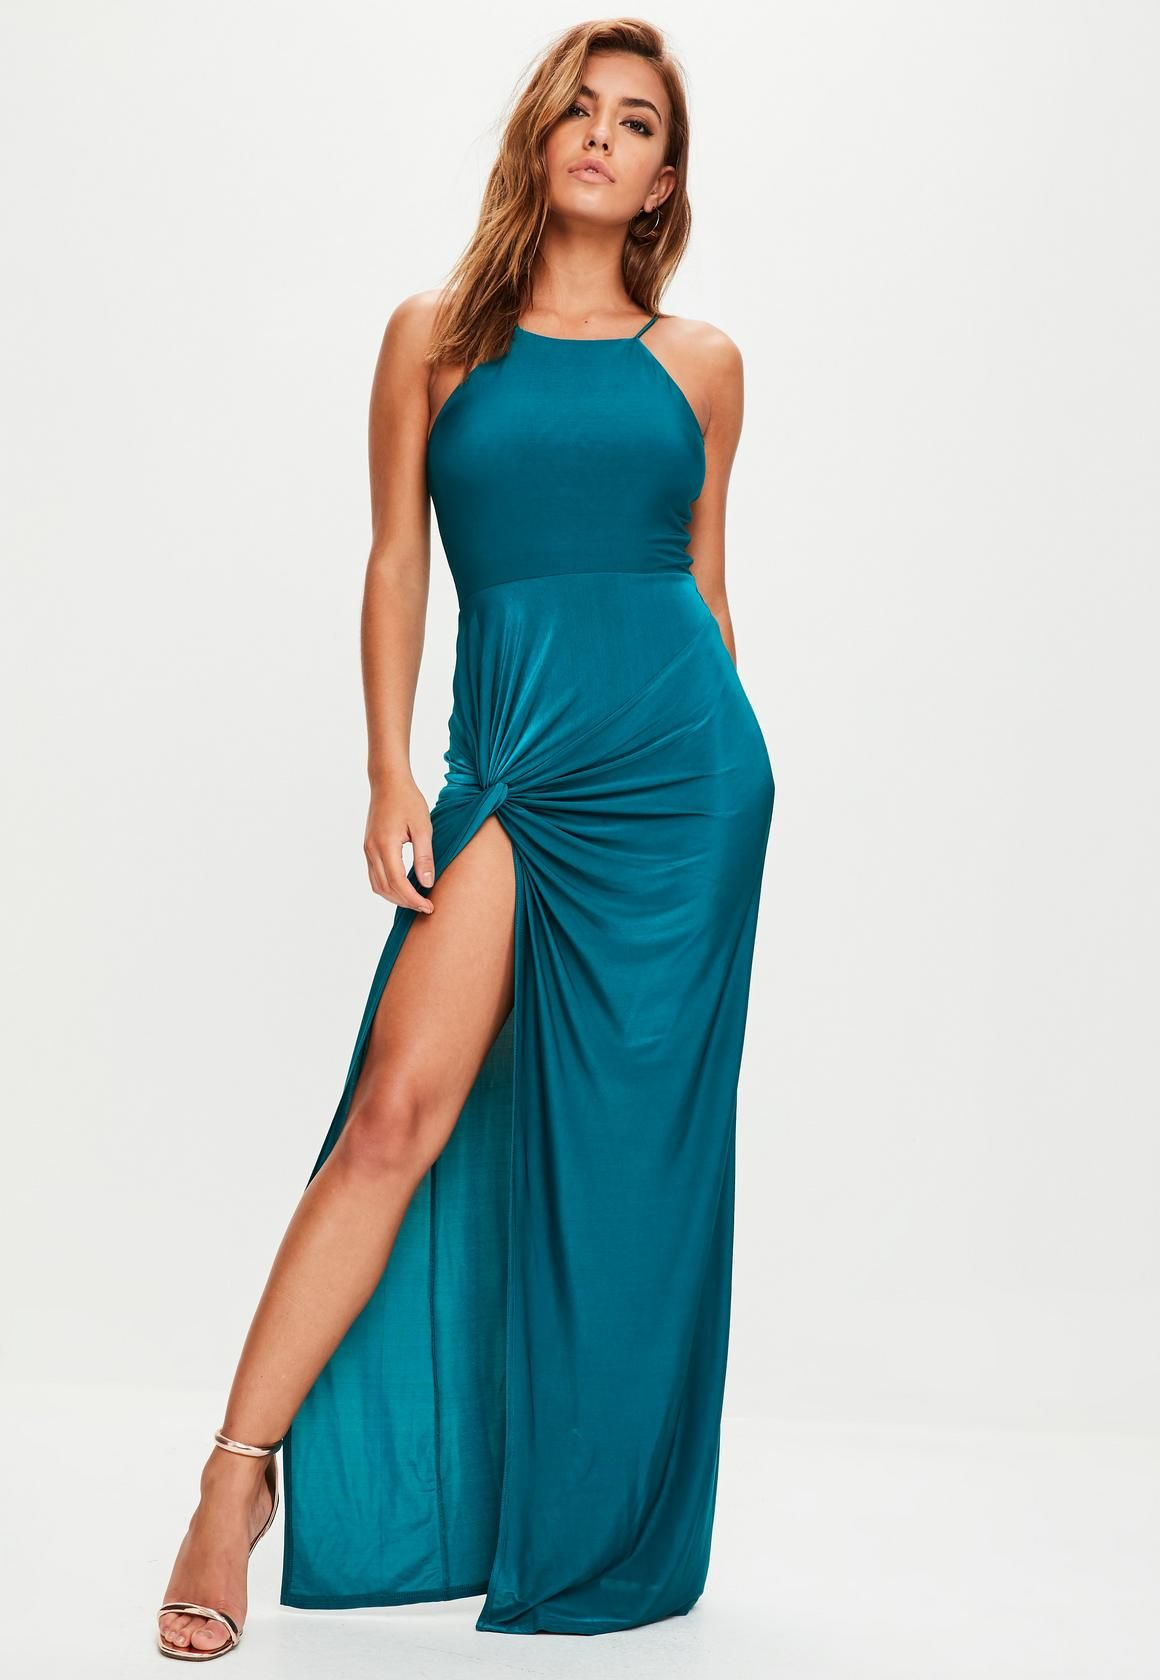 Pin by anita on vestidos pinterest teal blue missguided and teal